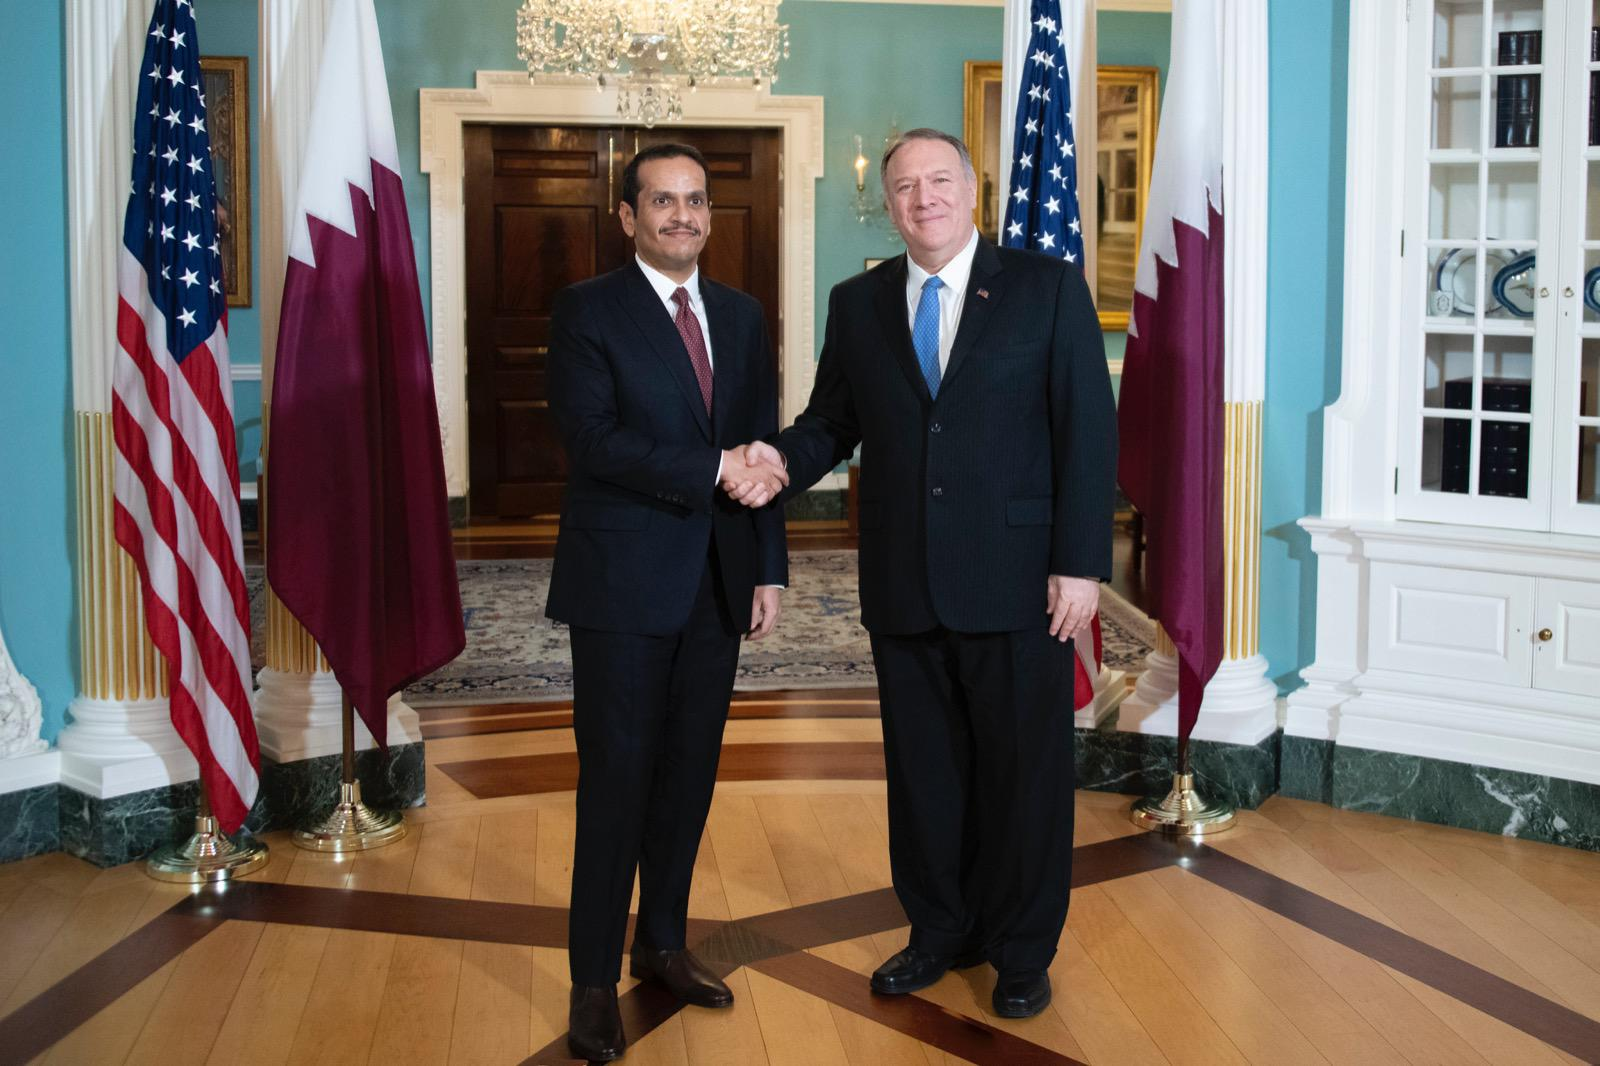 Deputy Prime Minister and Minister of Foreign Affairs Meets US Secretary of State